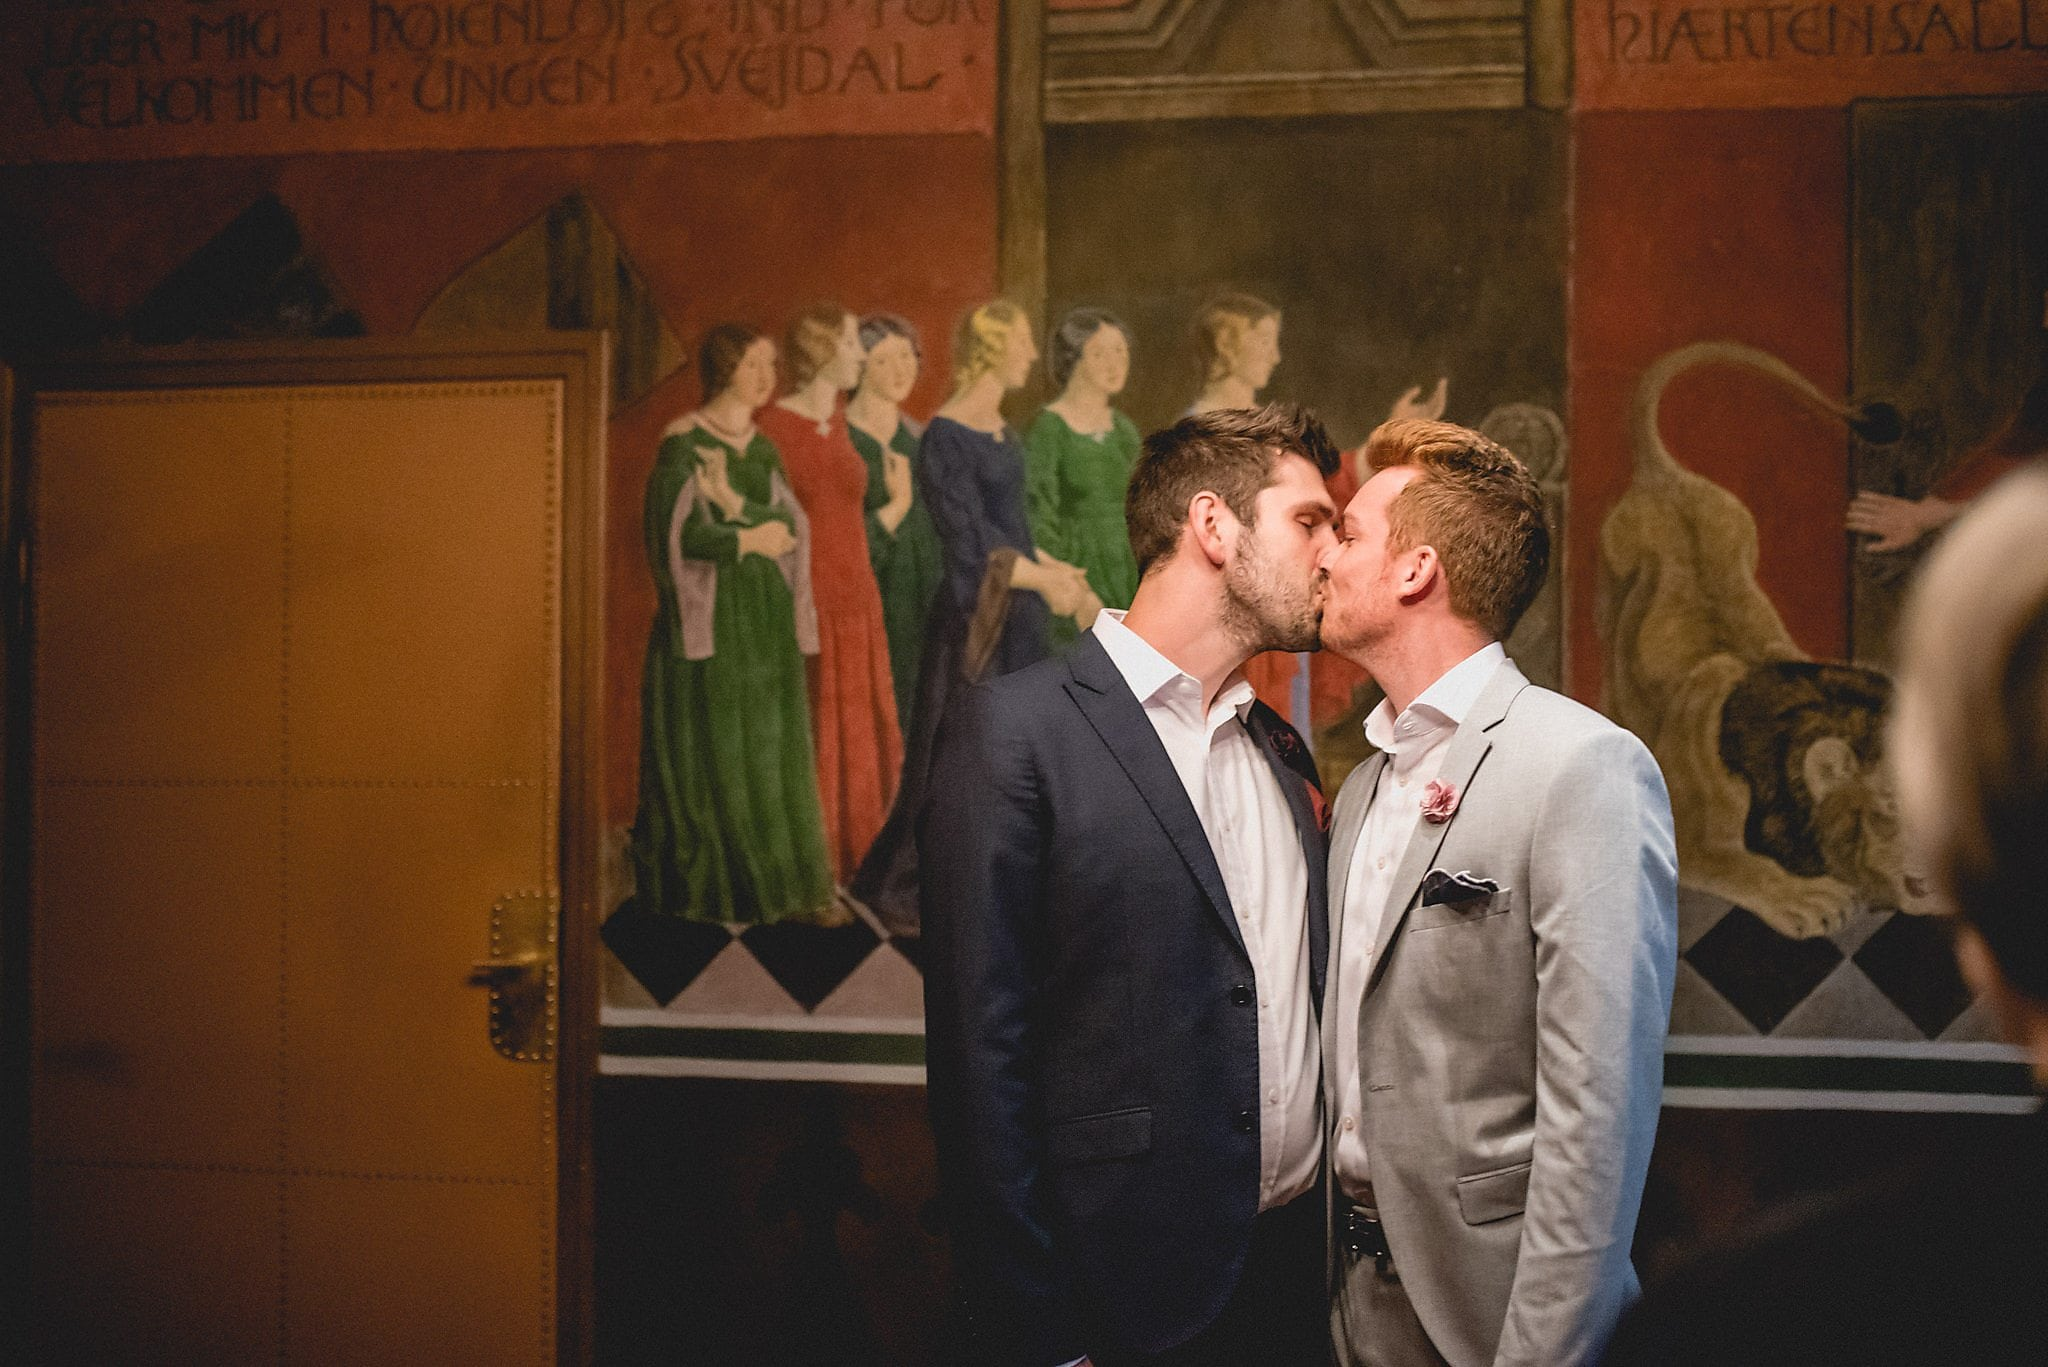 The newlyweds share a kiss in the ceremony room of the Copenhagen Radhus